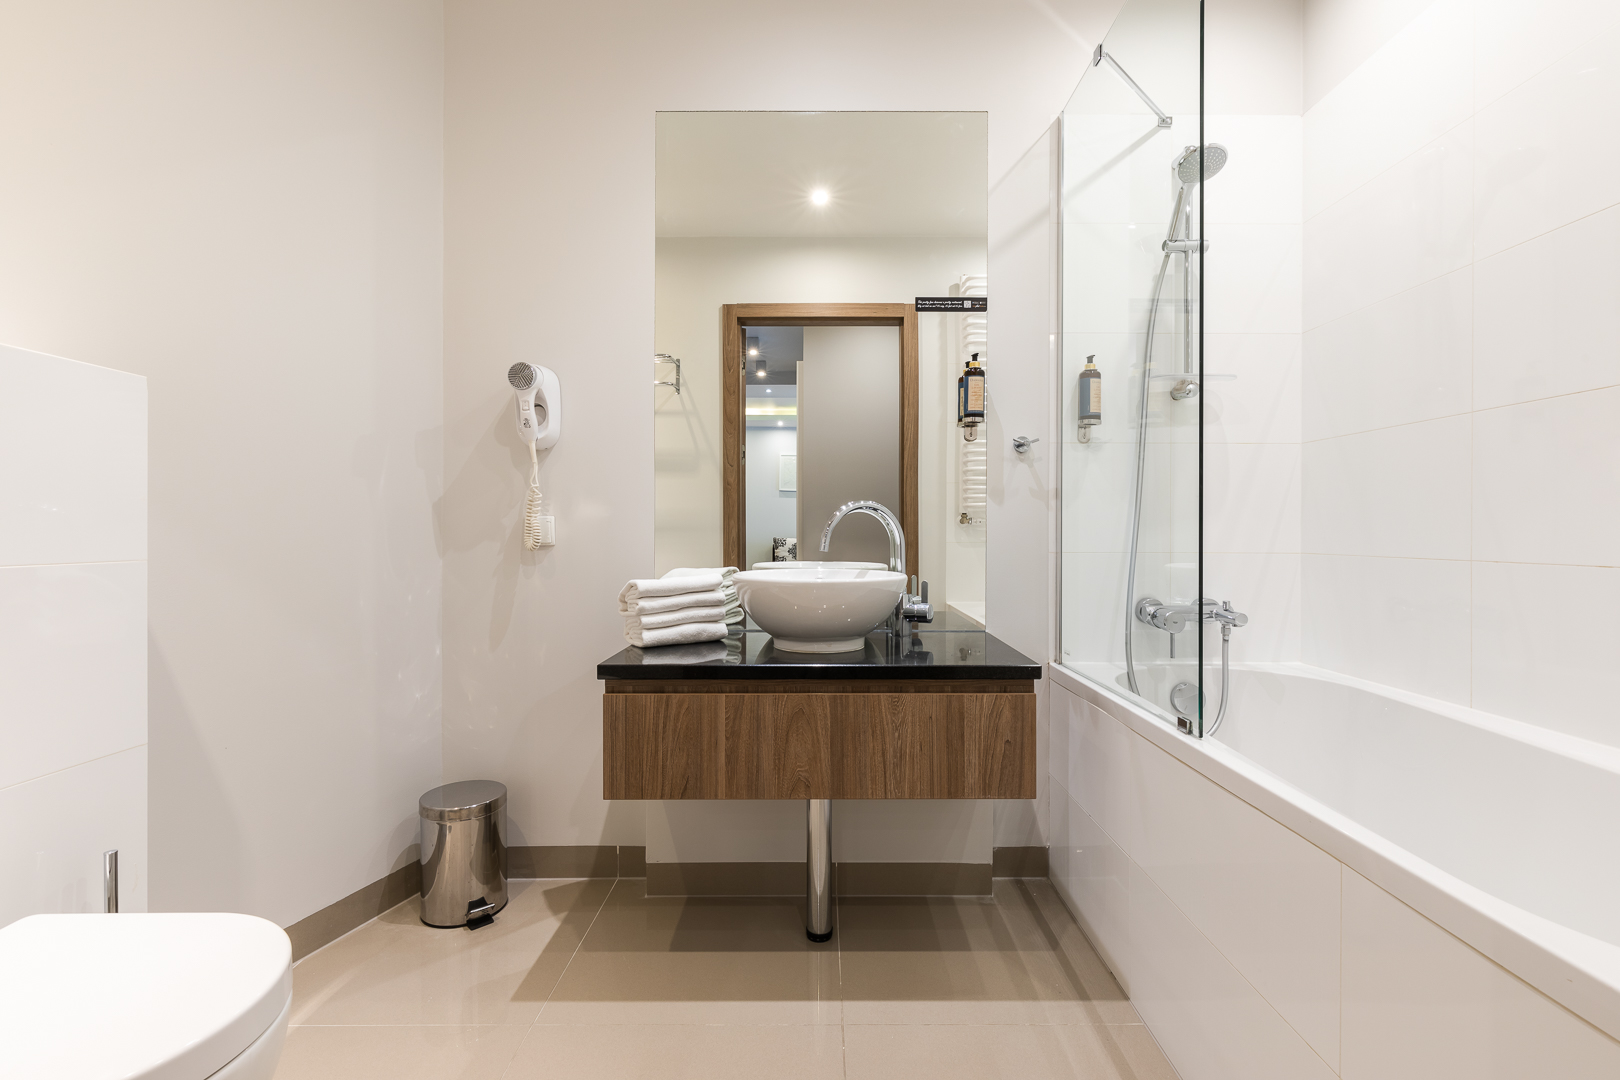 Sinks at Wronia Serviced Apartments